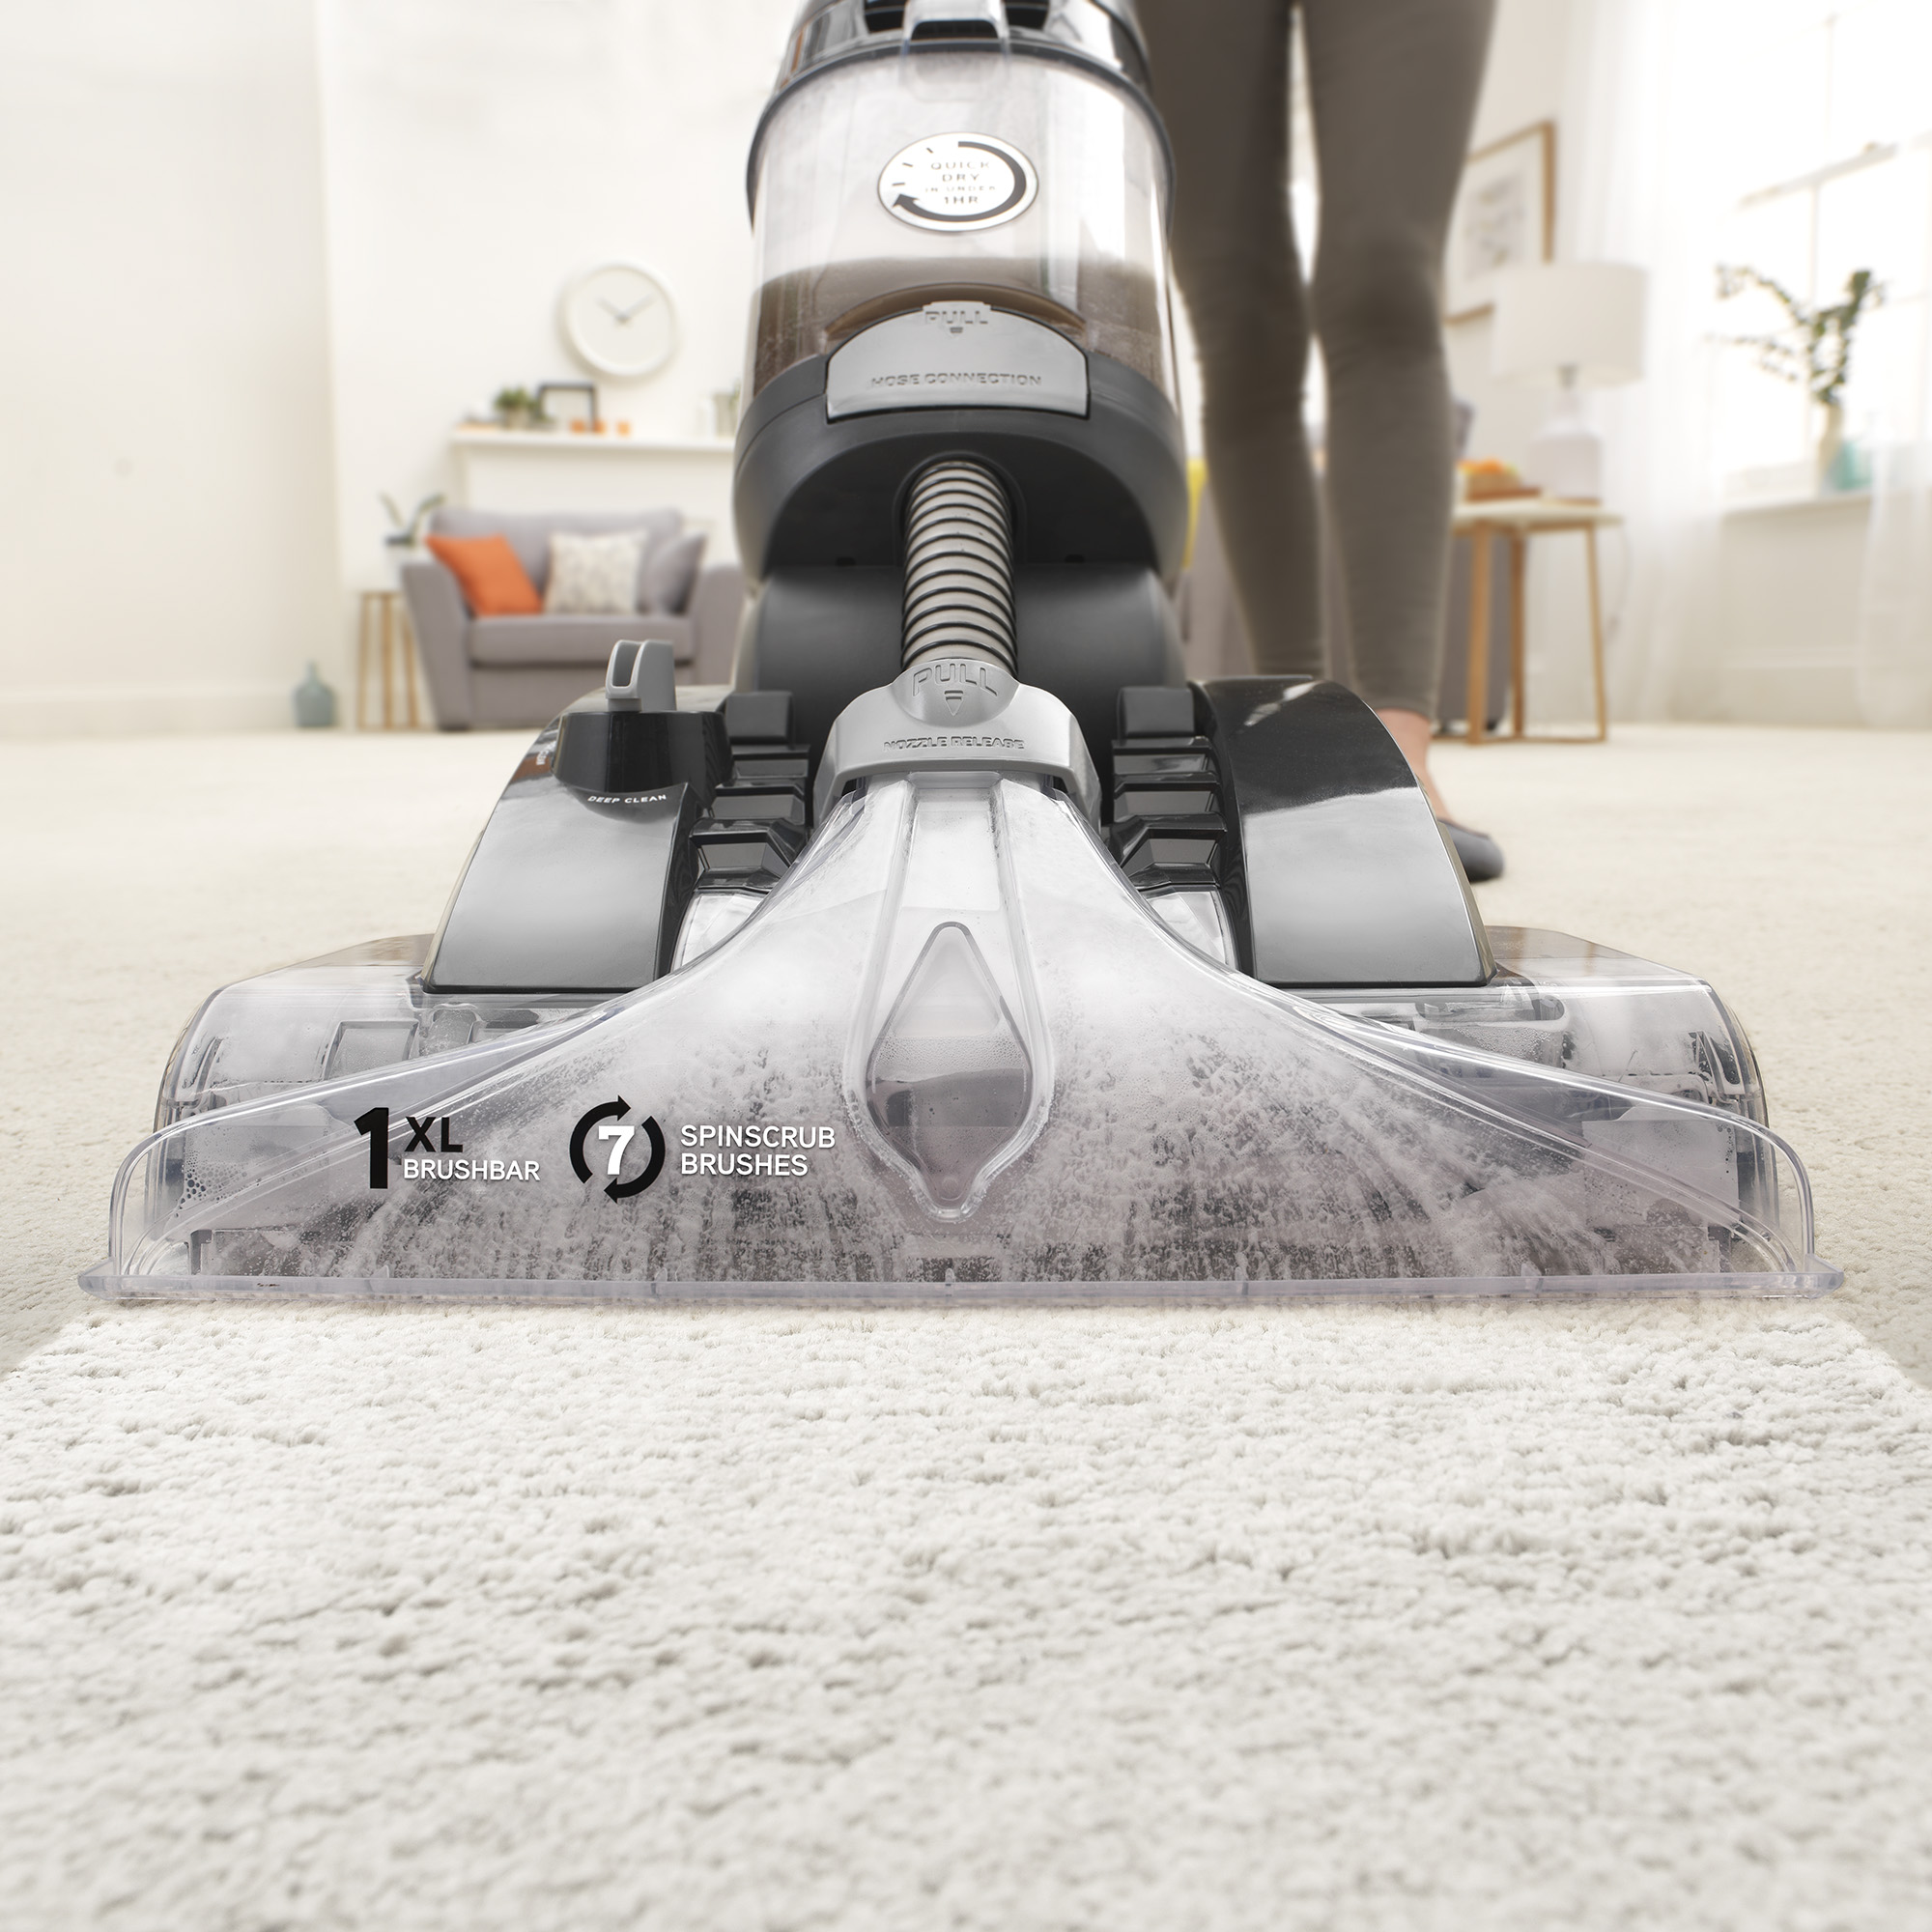 How To Use A Vax Platinum Power Max Carpet Cleaner Vax Blog